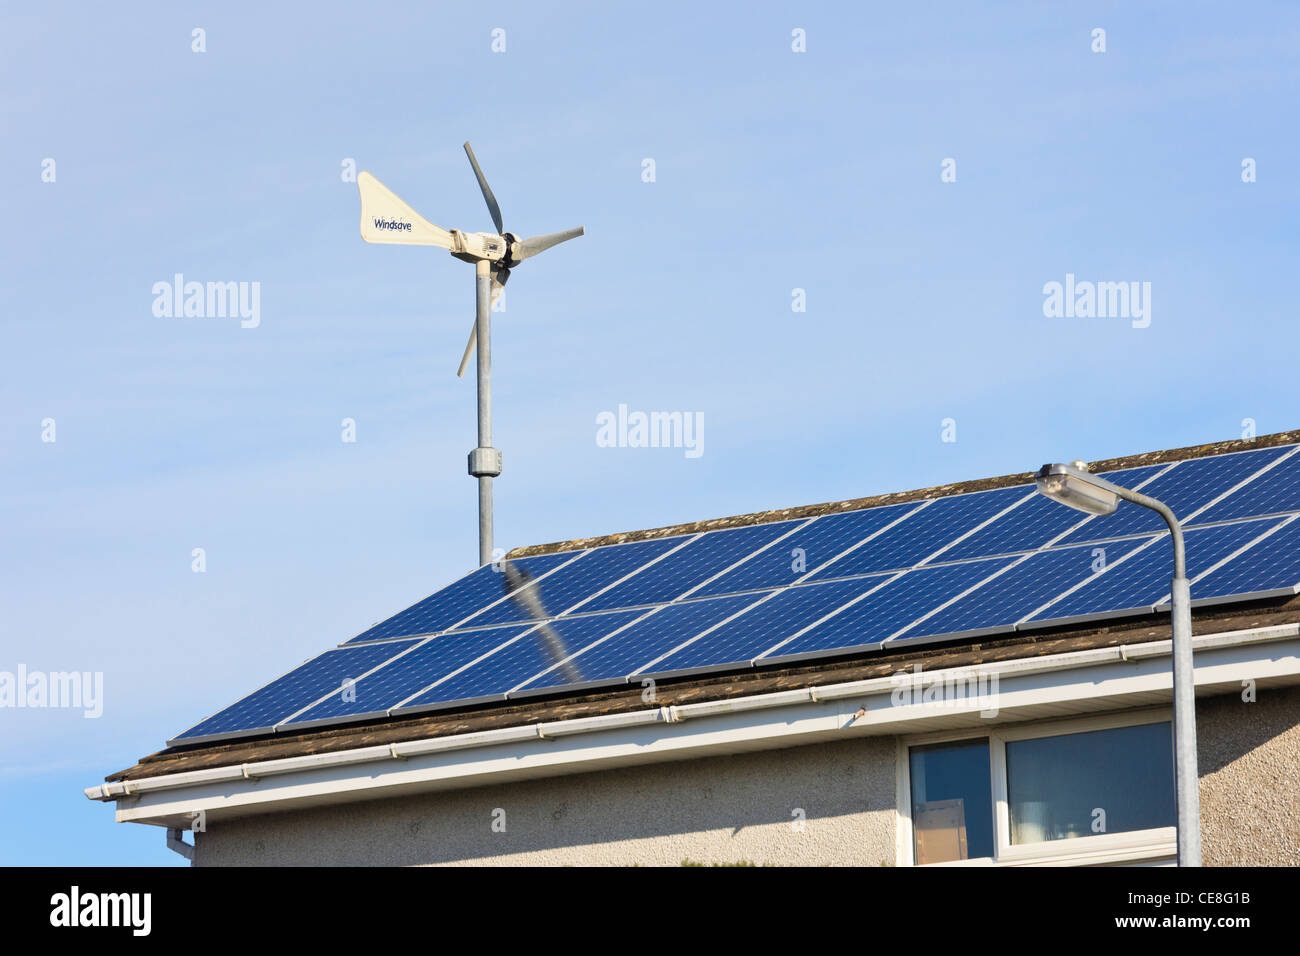 Windsave micro wind turbine and solar panels on a house roof providing cheap electricity alternative energy power - Stock Image